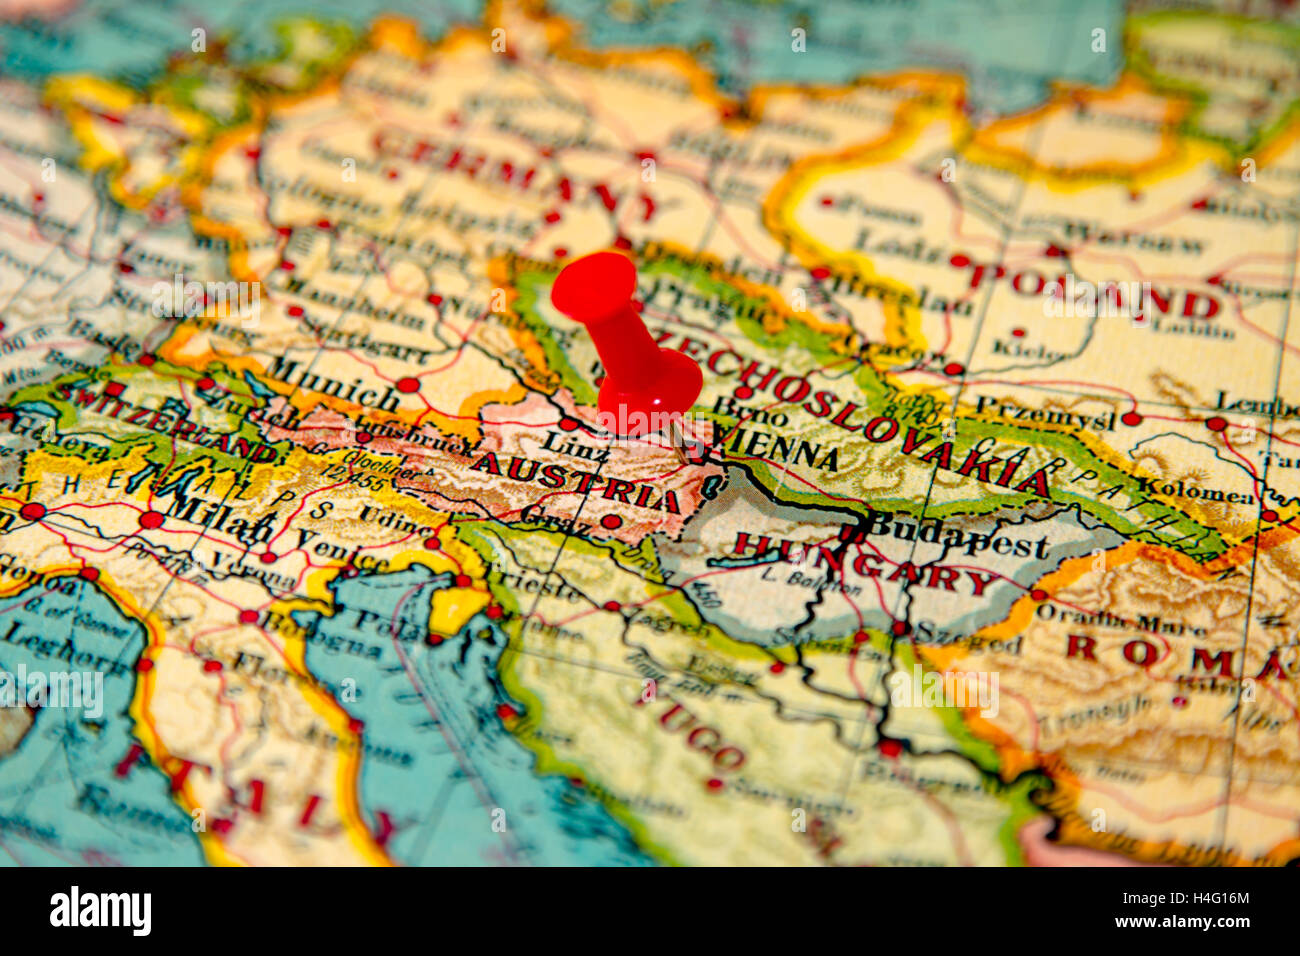 Vienna, Austria Pinned On Vintage Map Of Europe   Stock Image